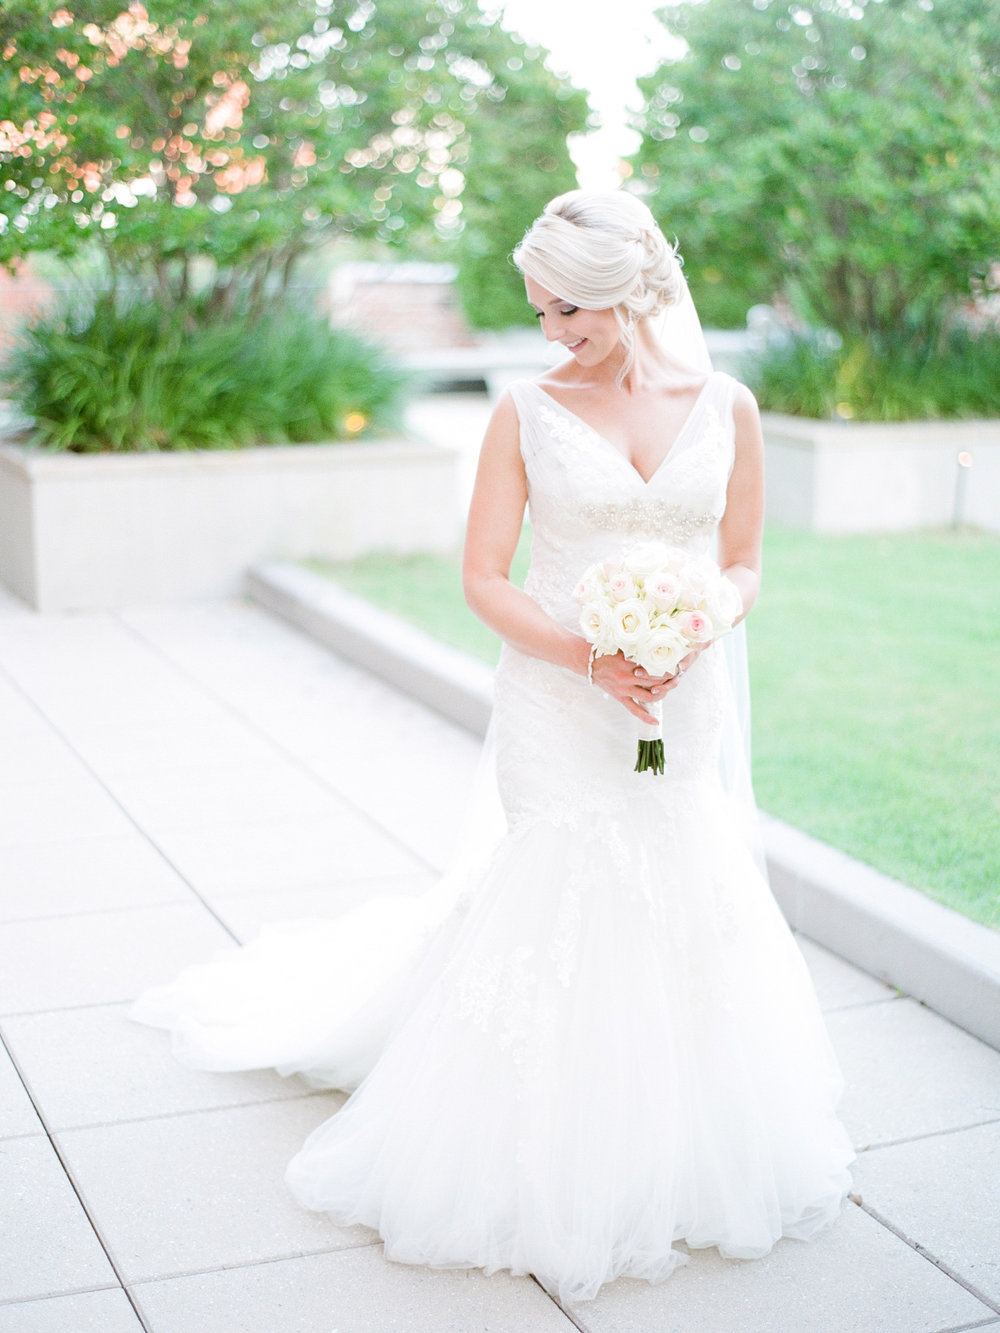 rooftop alley station bridal_photography_editorial_martha stewart wedding_blonde bride updo_montgomery wedding photographer_birmingham wedding photographer_destin alys beach 30A wedding photographer